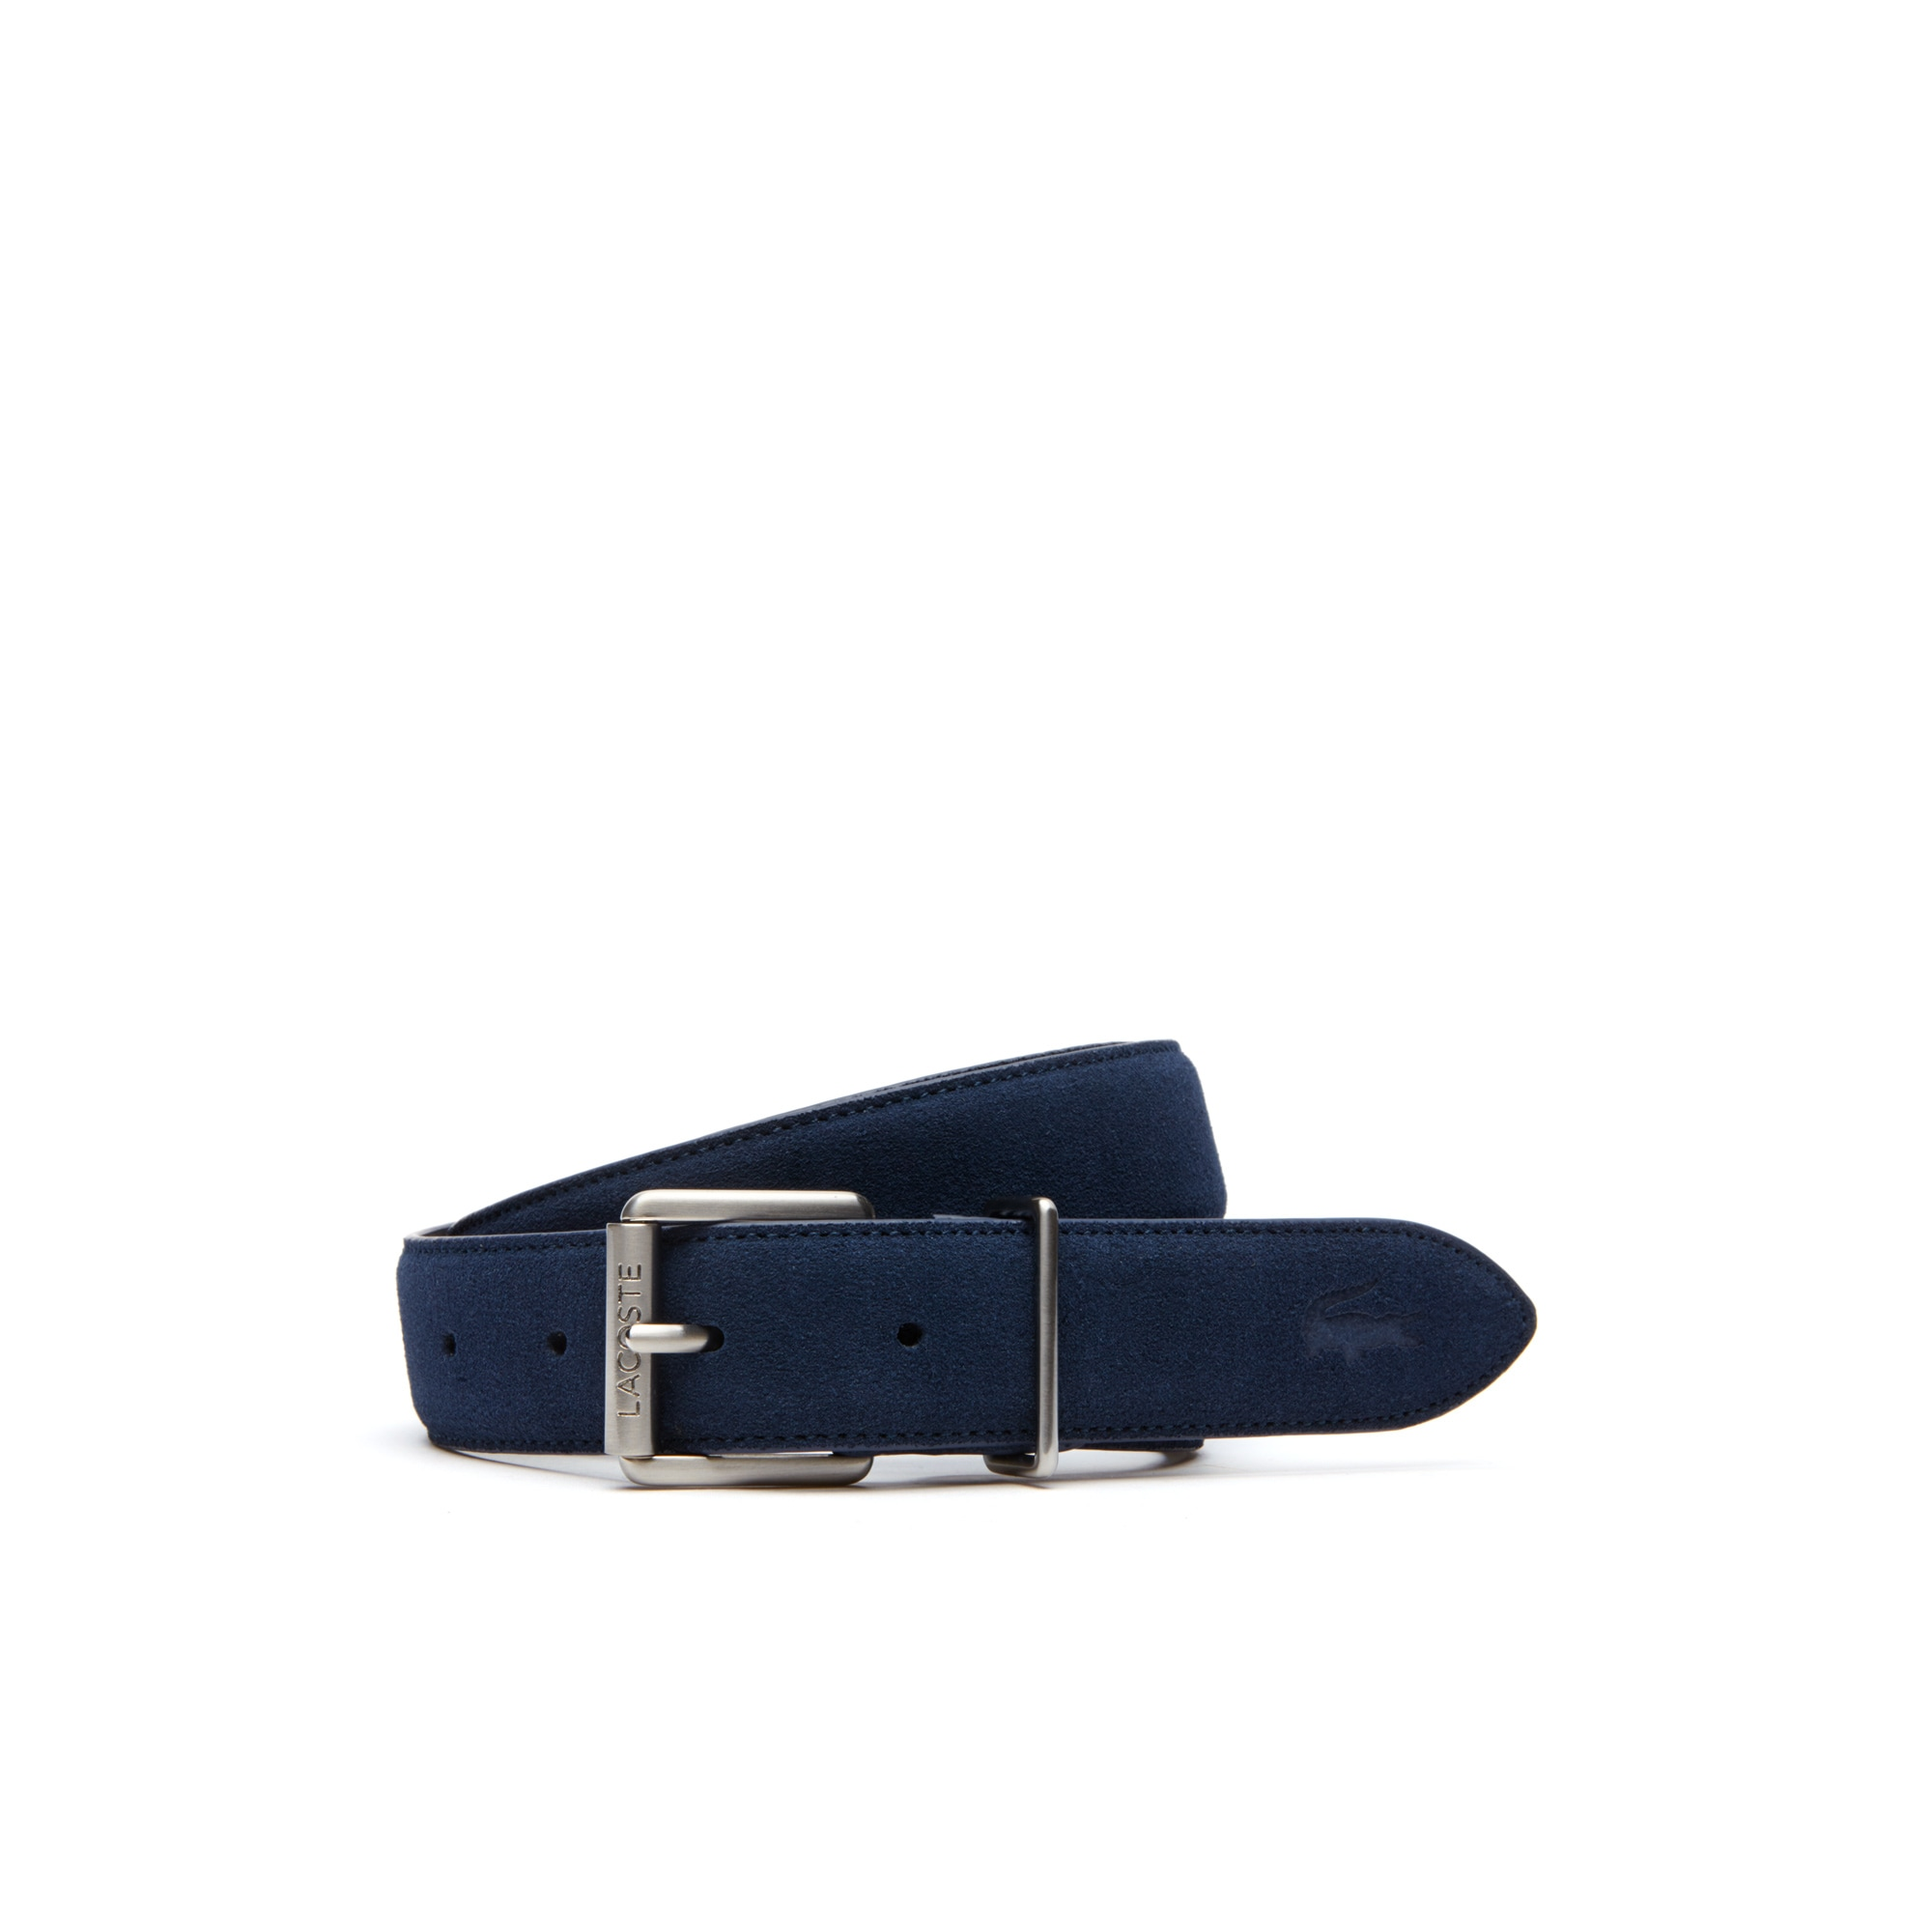 라코스테 Lacoste Mens Tongue Buckle Suede-Style Leather Belt,blue jeans